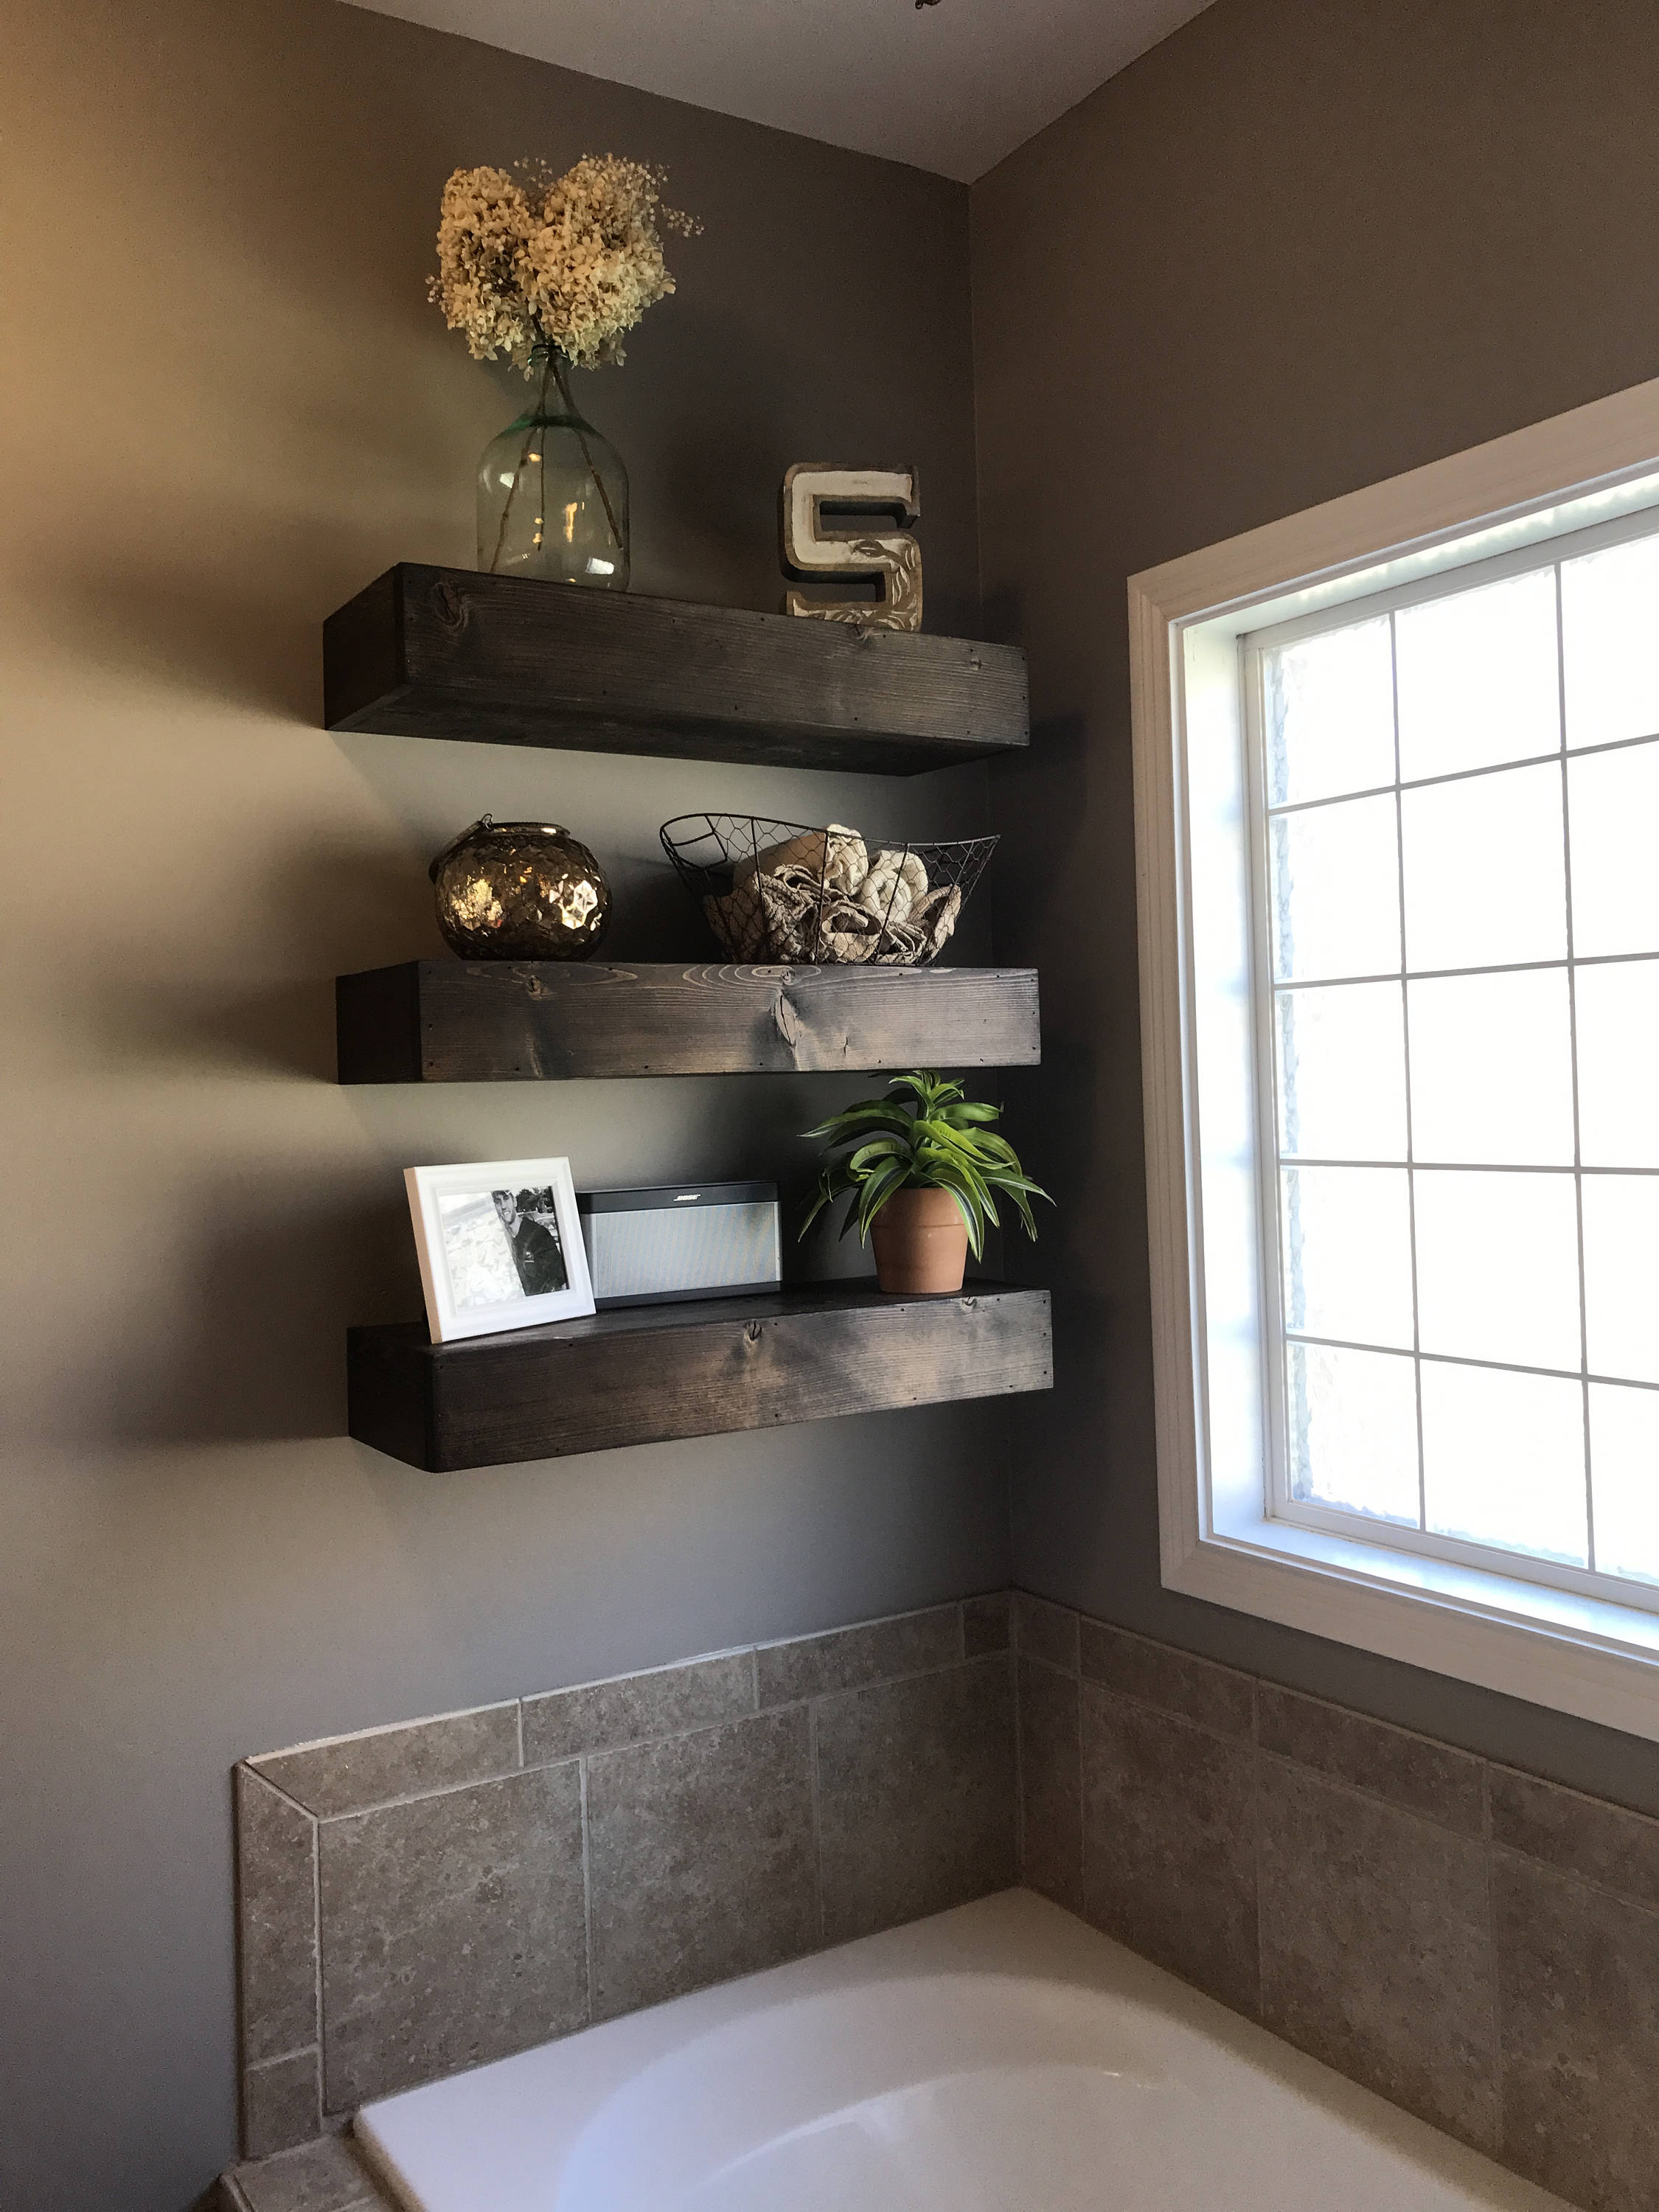 wood floating shelf shelves rustic bathroom etsy fullxfull wall desks for home use garage shelving systems oak ture ledge thin ikea inch wide corner entertainment hanging coat